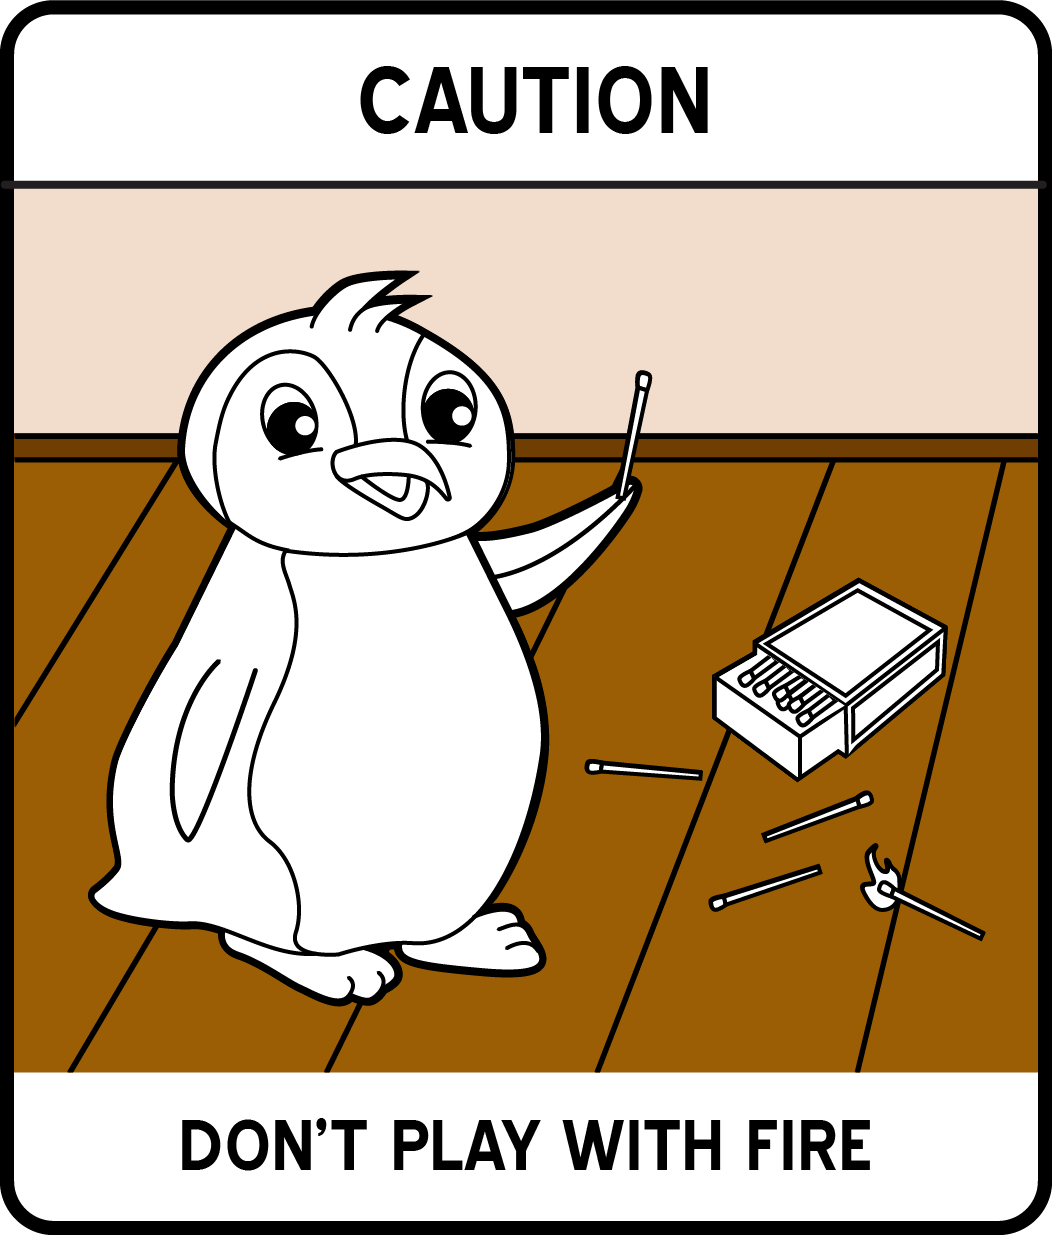 A cartoon penguin playing with a box of matches strewn about the floor as a safety sign.